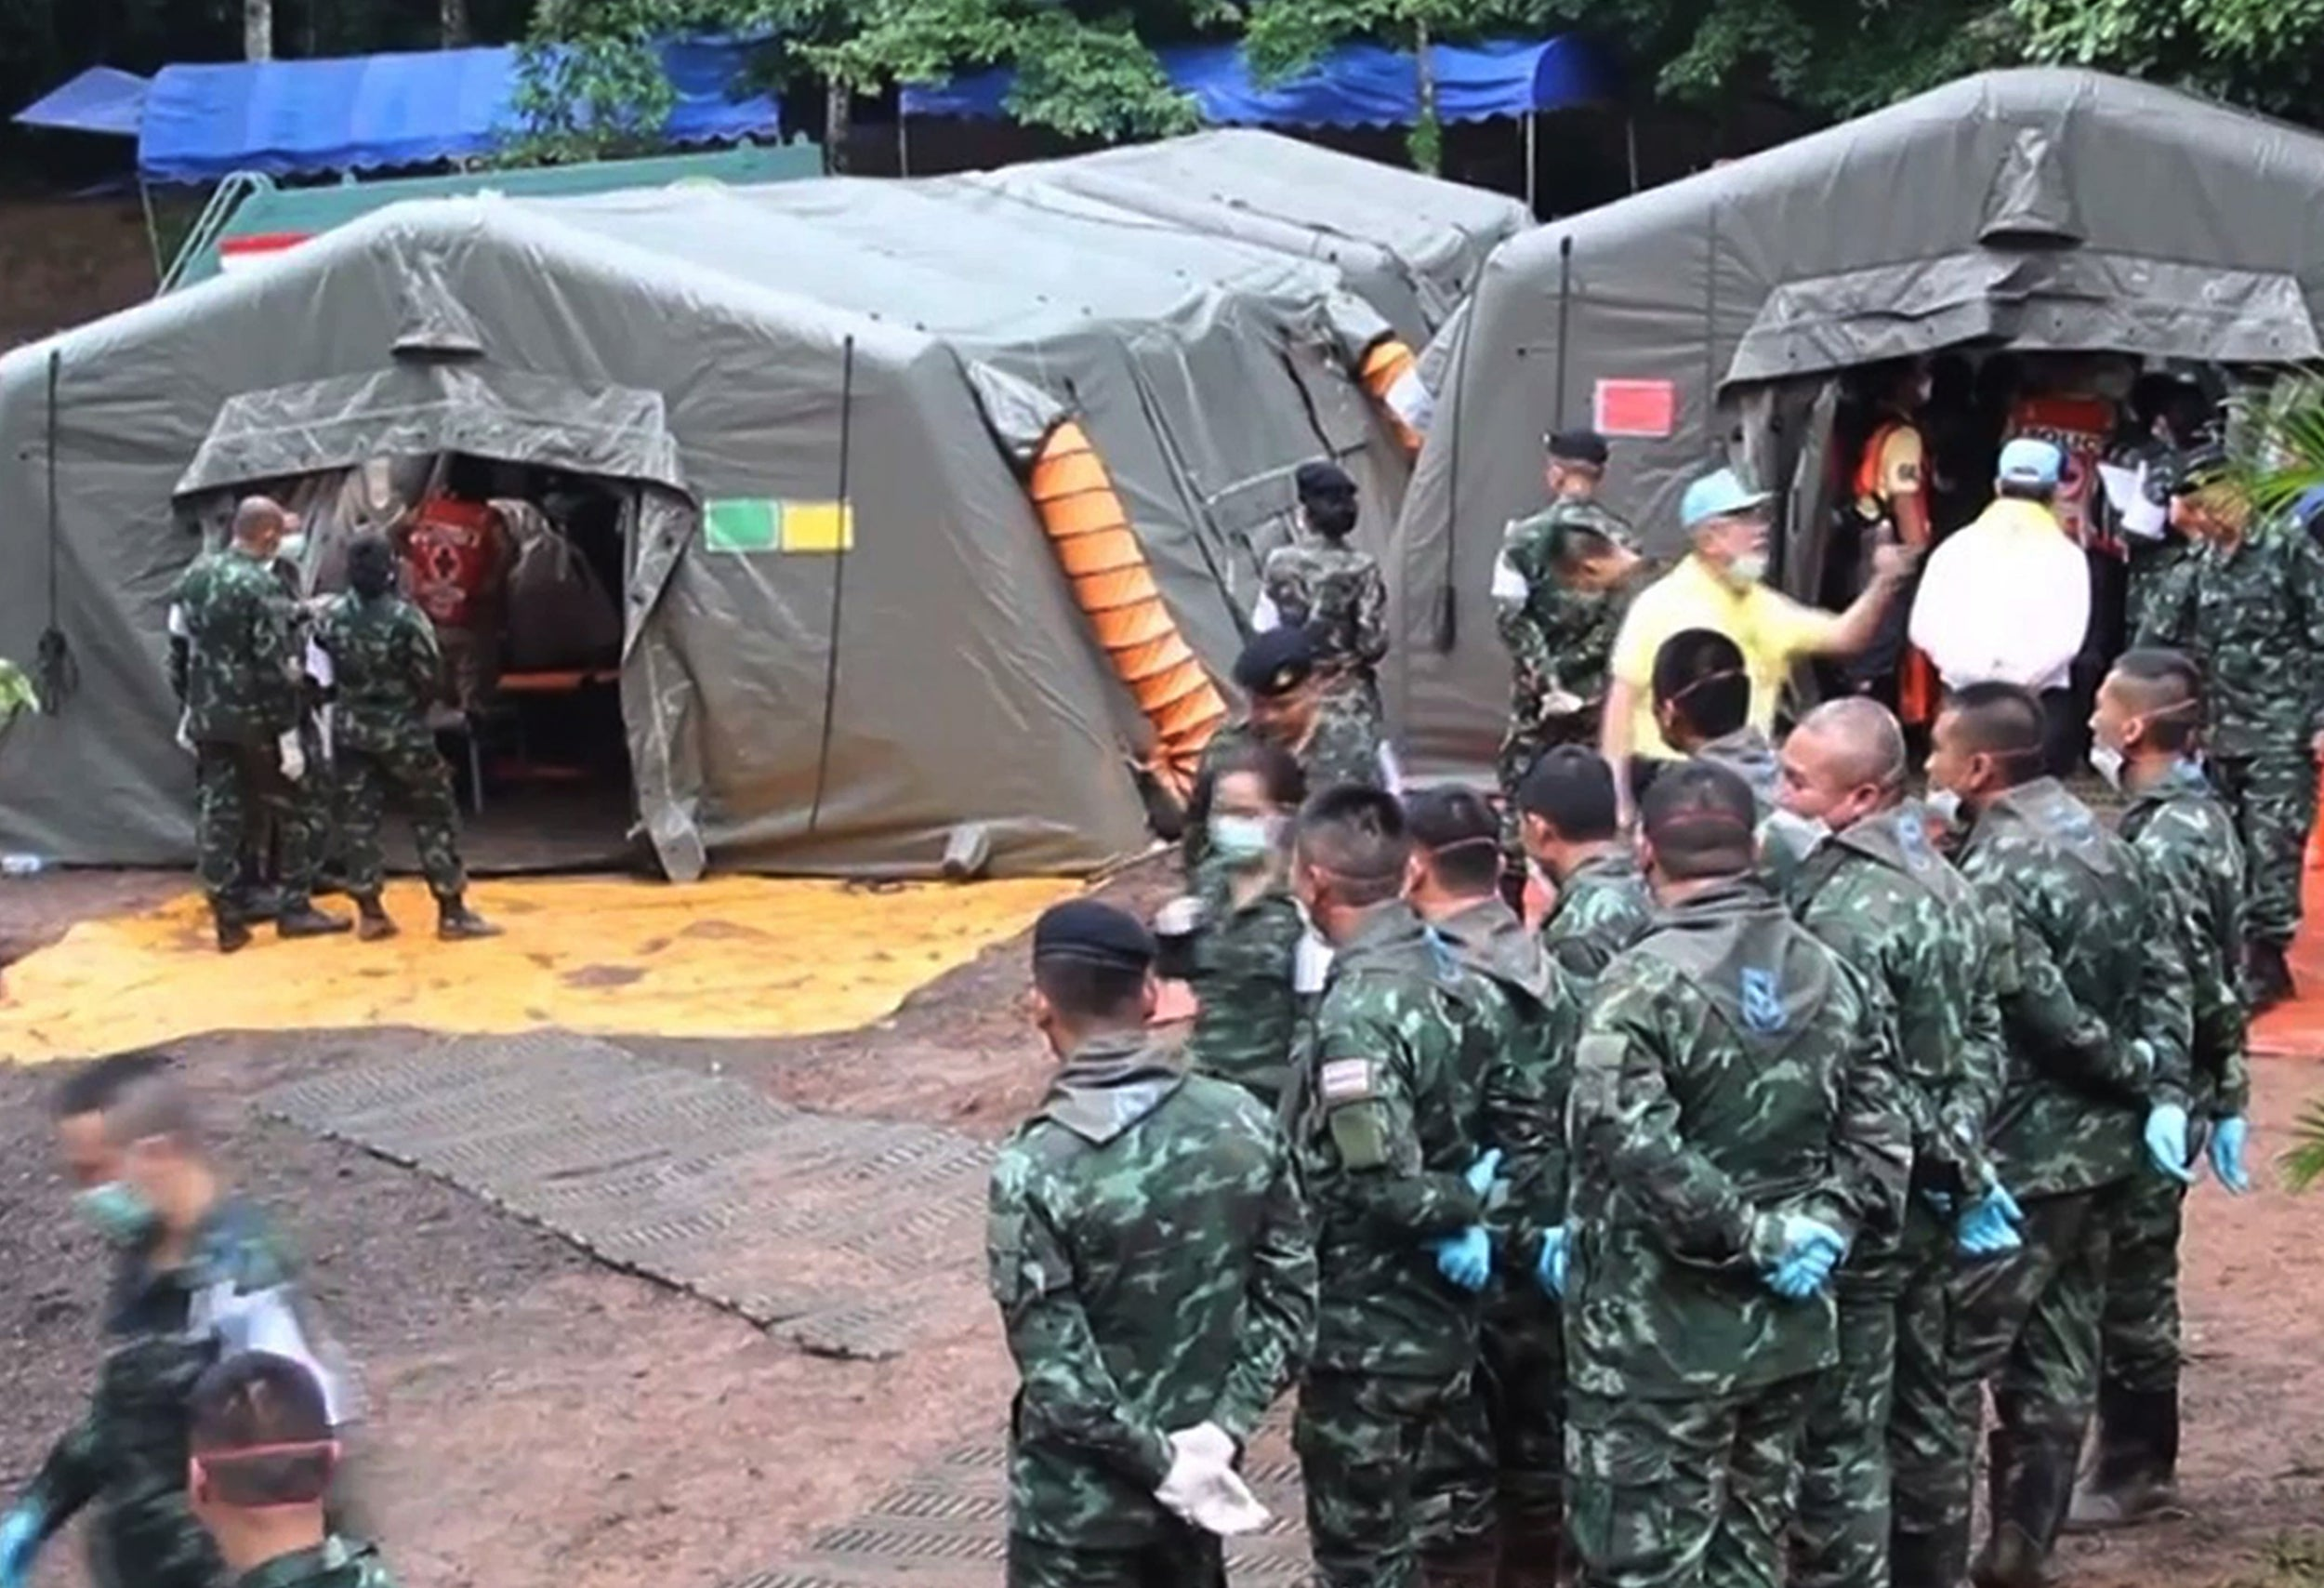 Thailand cave rescue: Final five to be brought out 'tomorrow' ahead of forecast storms